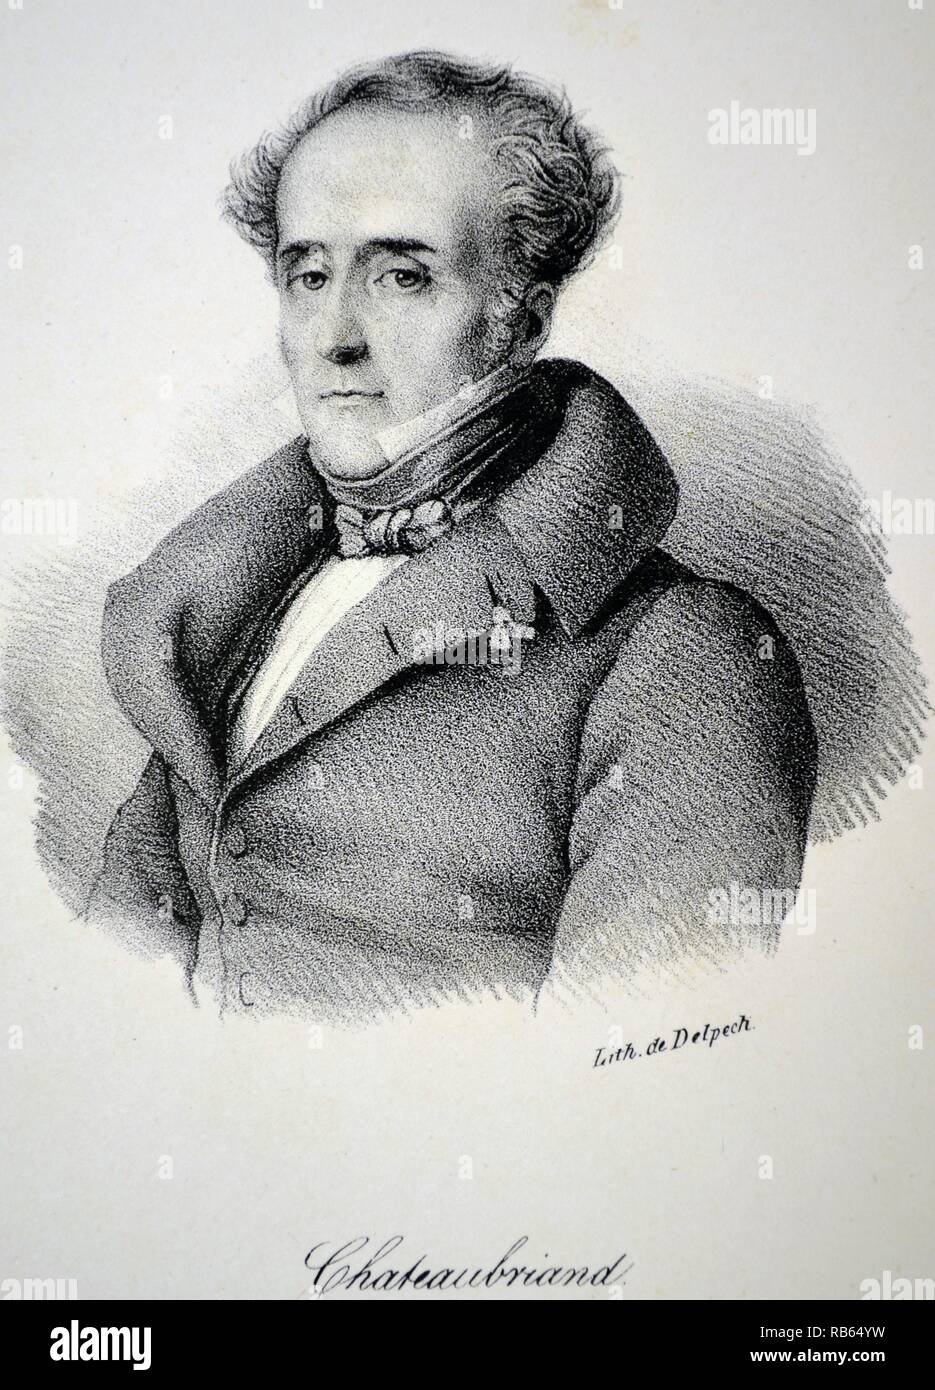 Francois Rene, vicomte de Chateaubriand (1768-1848) French writer, politician and diplomat. He founded Romanticism in French literature. Ithograph, Paris, c1840. - Stock Image